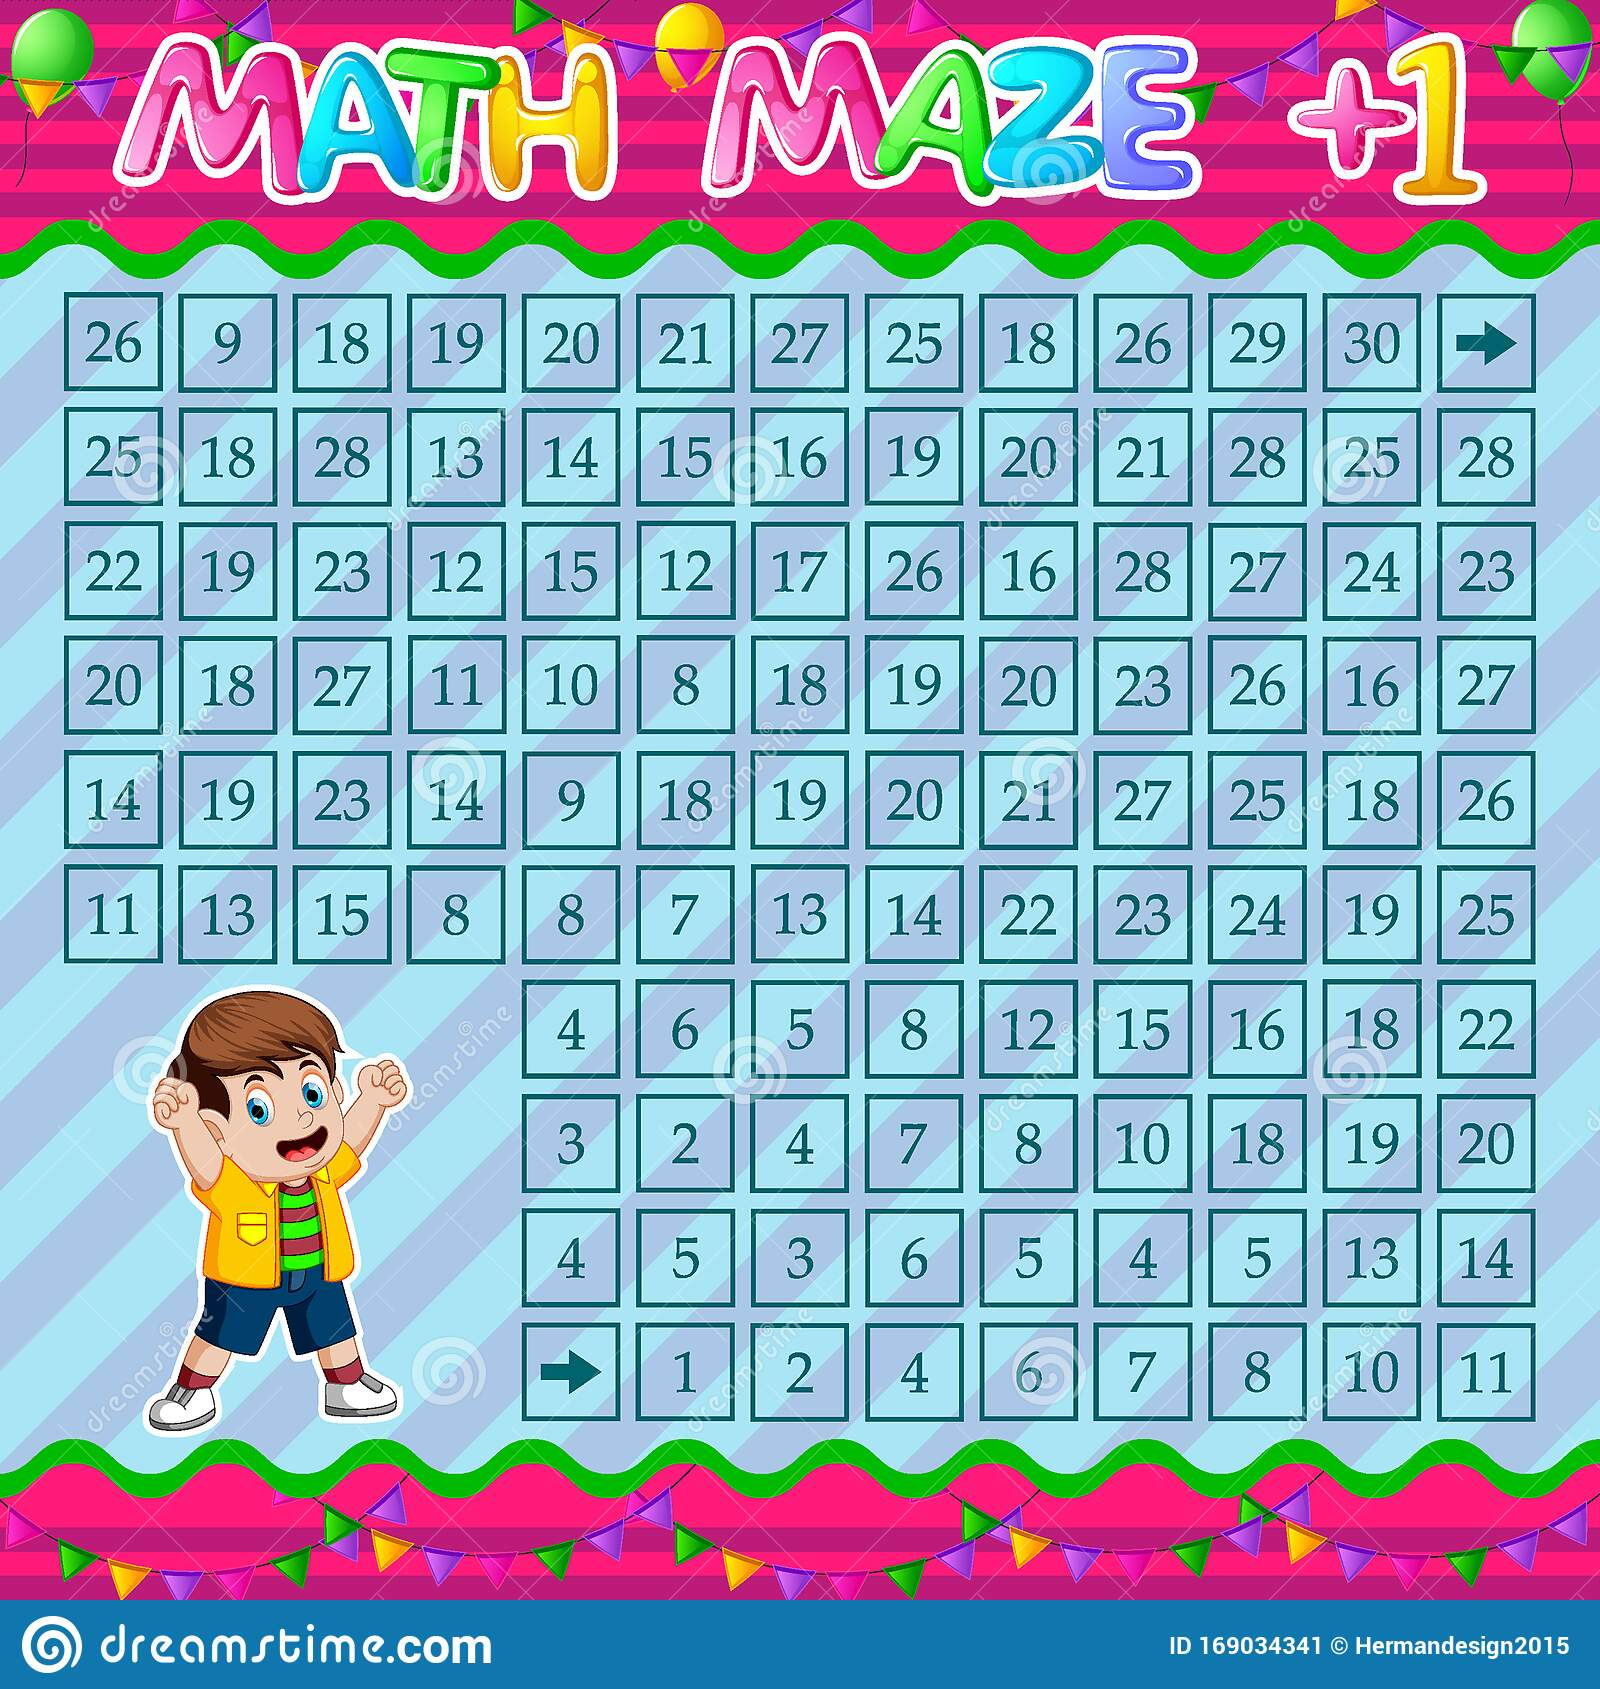 Math Maze Addition Worksheet With Cute Boy Stock Vector